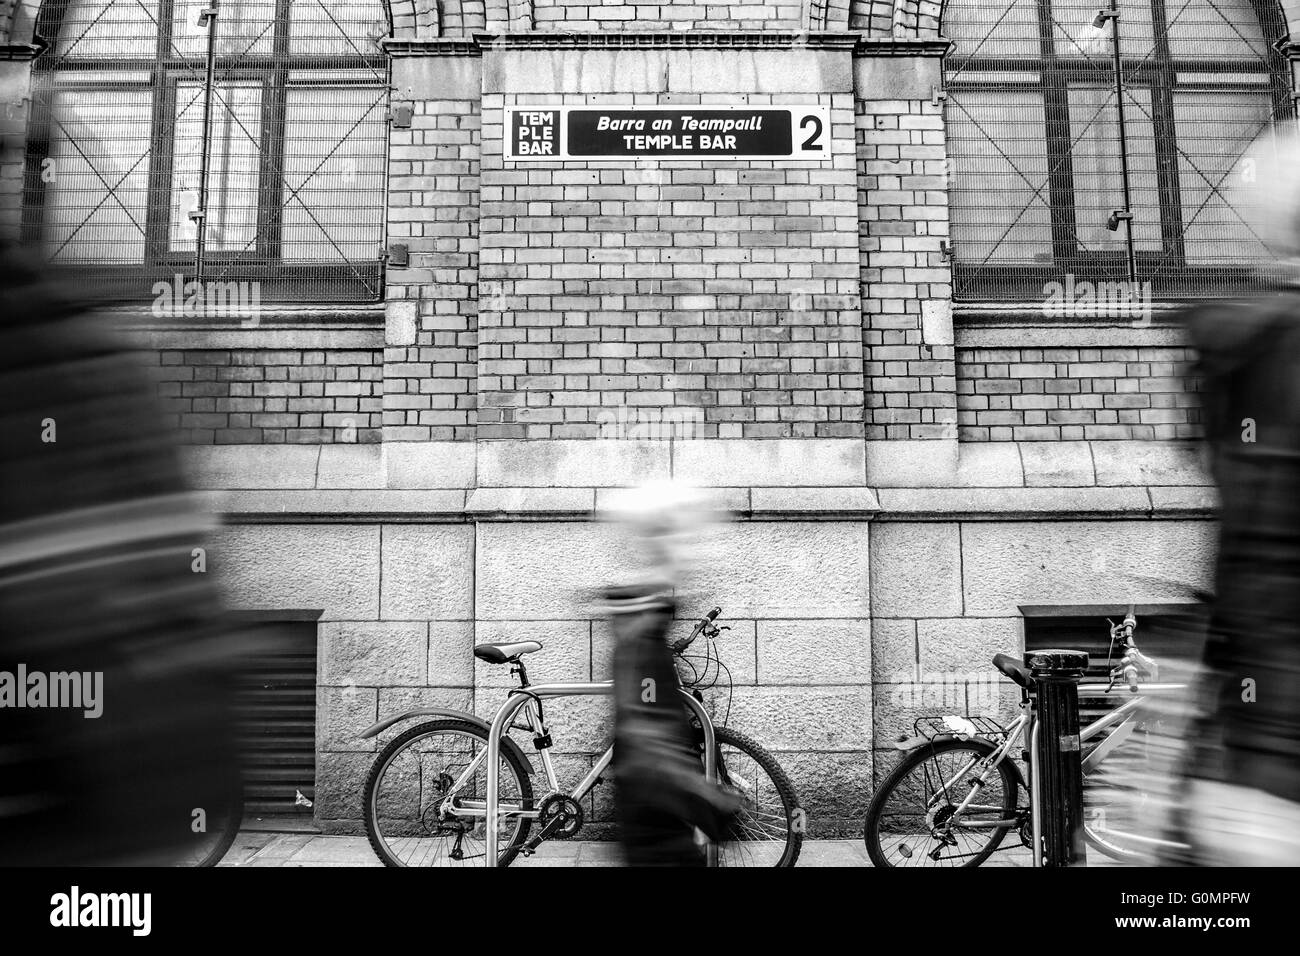 Temple Bar sign with the name of the street. Black and white - Stock Image